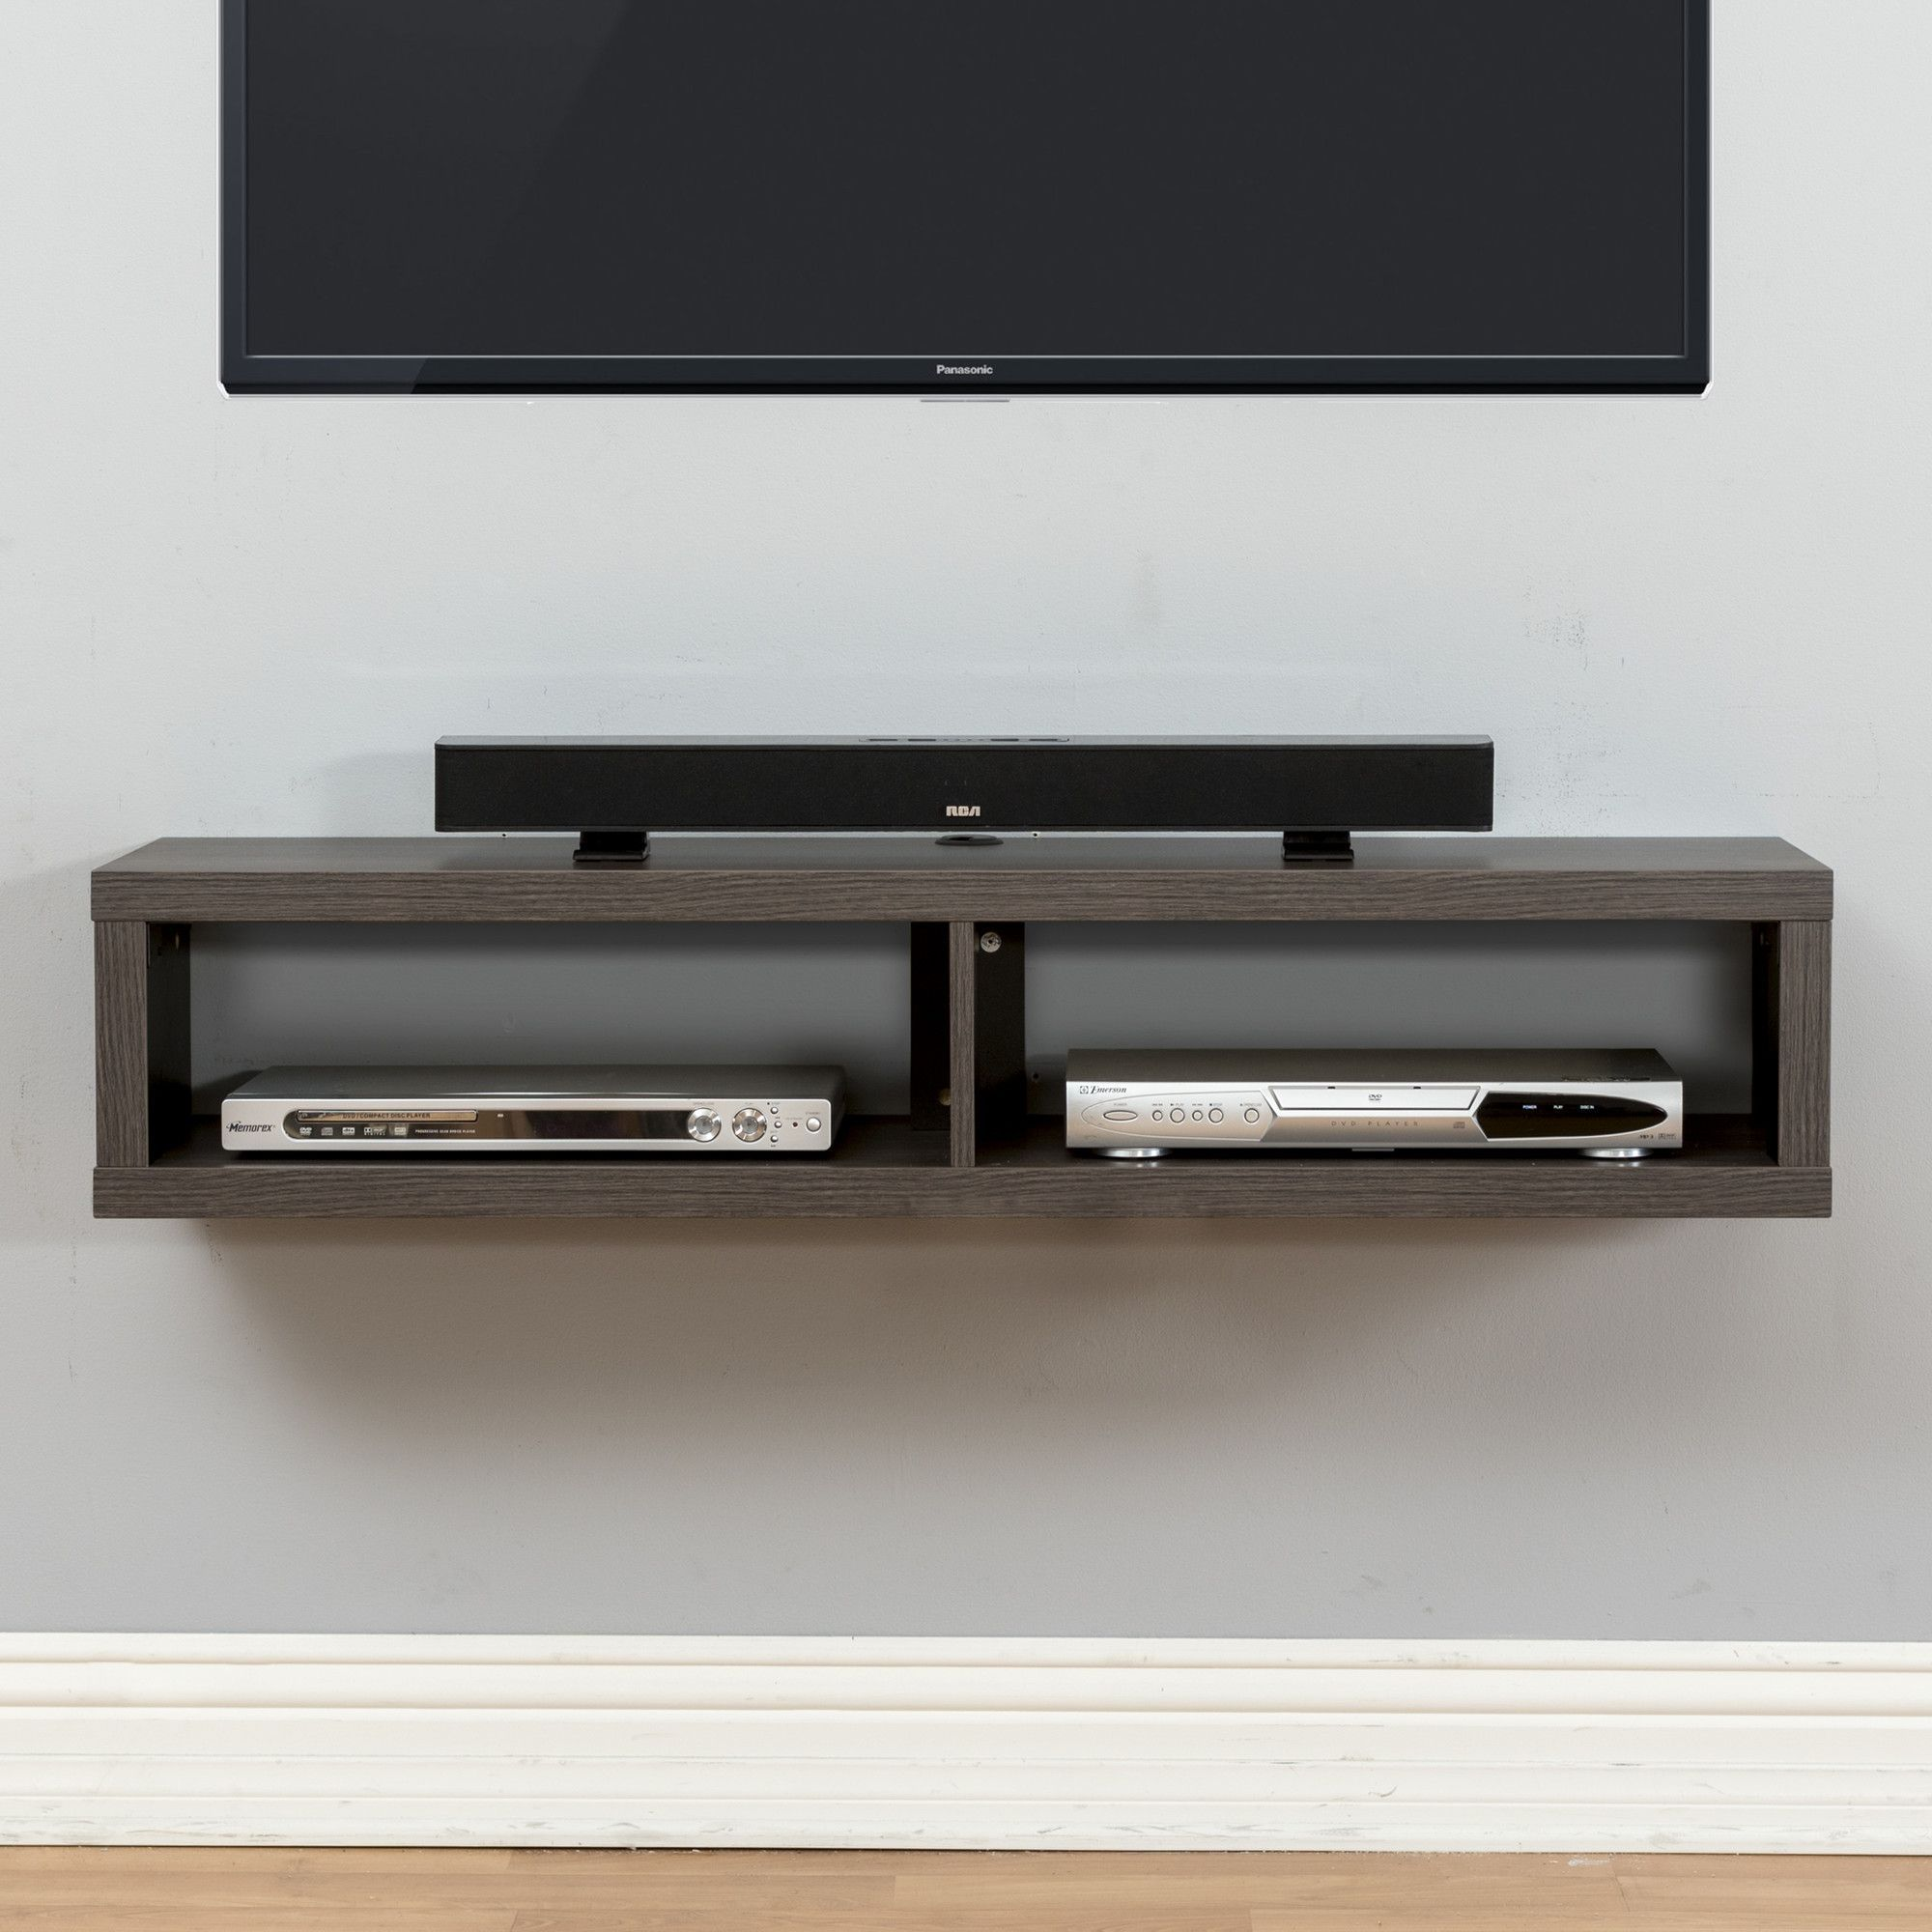 shallow wall mounted stand for tvs home decor floating shelf soundbar holds audio video components and sound bar compliment television lbs comes with mounting hardware desk